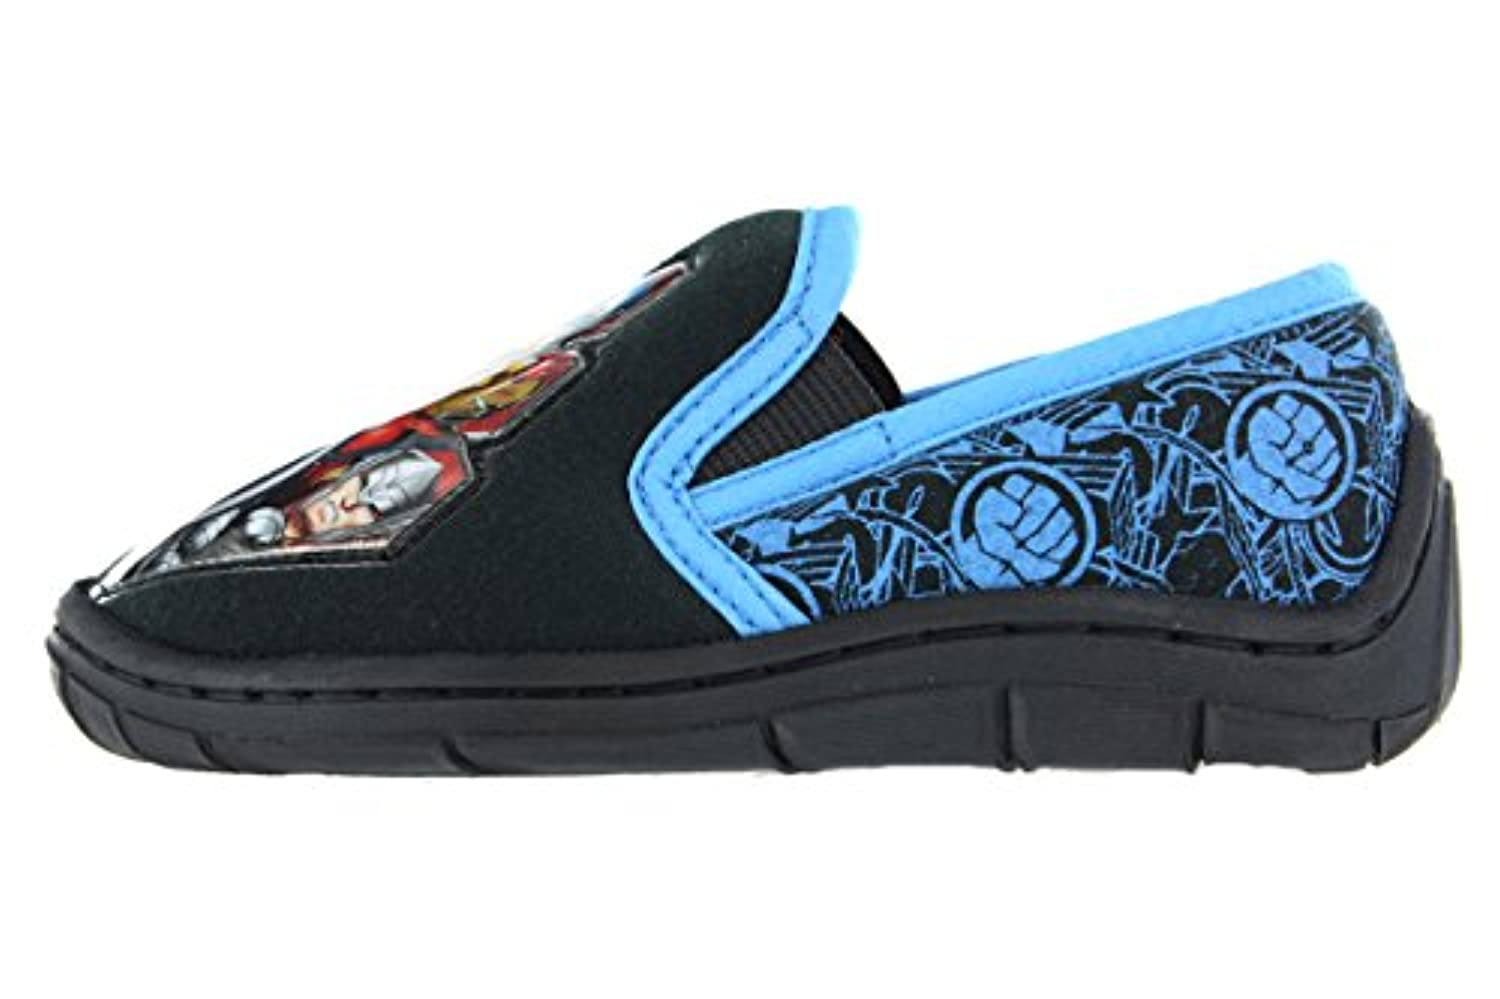 Boys Marvel Avengers Hulk Iron Man Thor Captain America Slip On Slippers Shoes Black Toddler Children Size UK 7 - 3